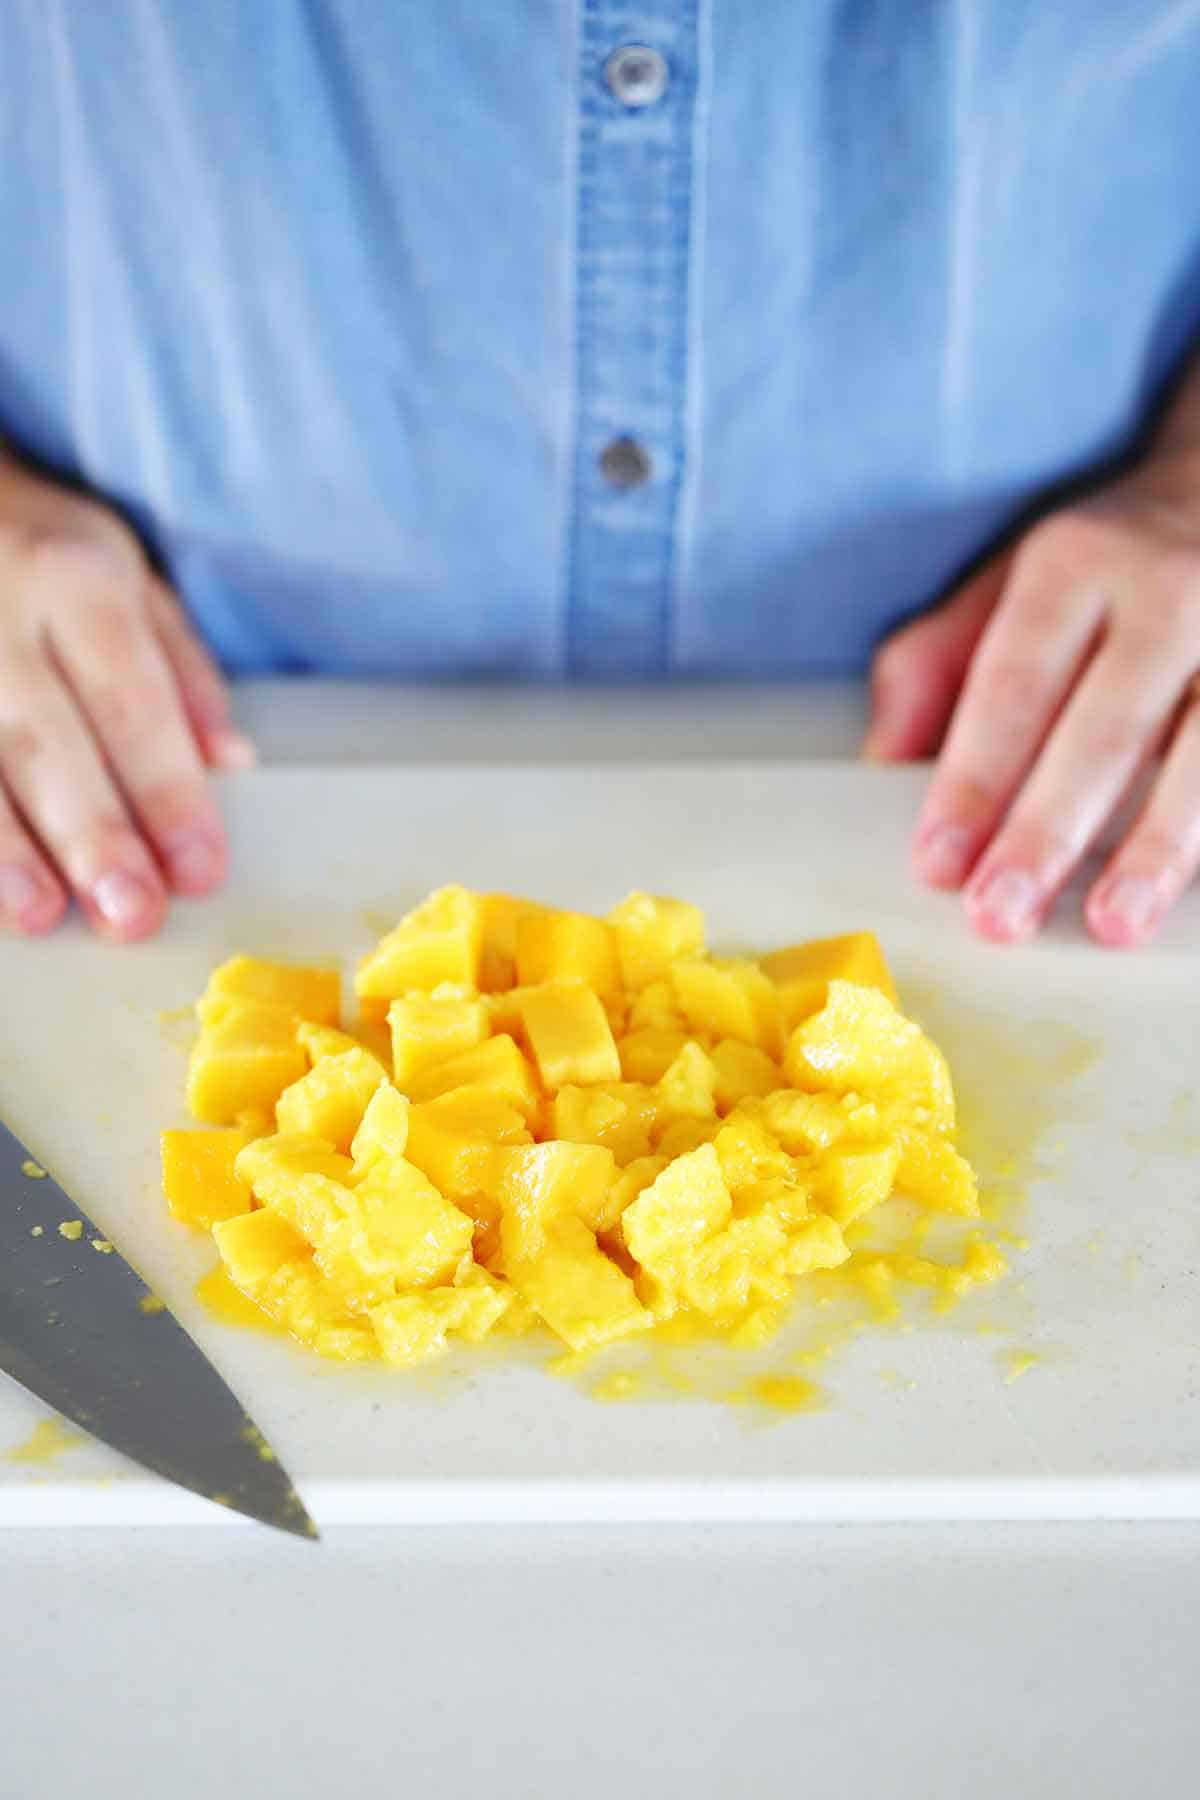 Chopped mango on a cutting board.